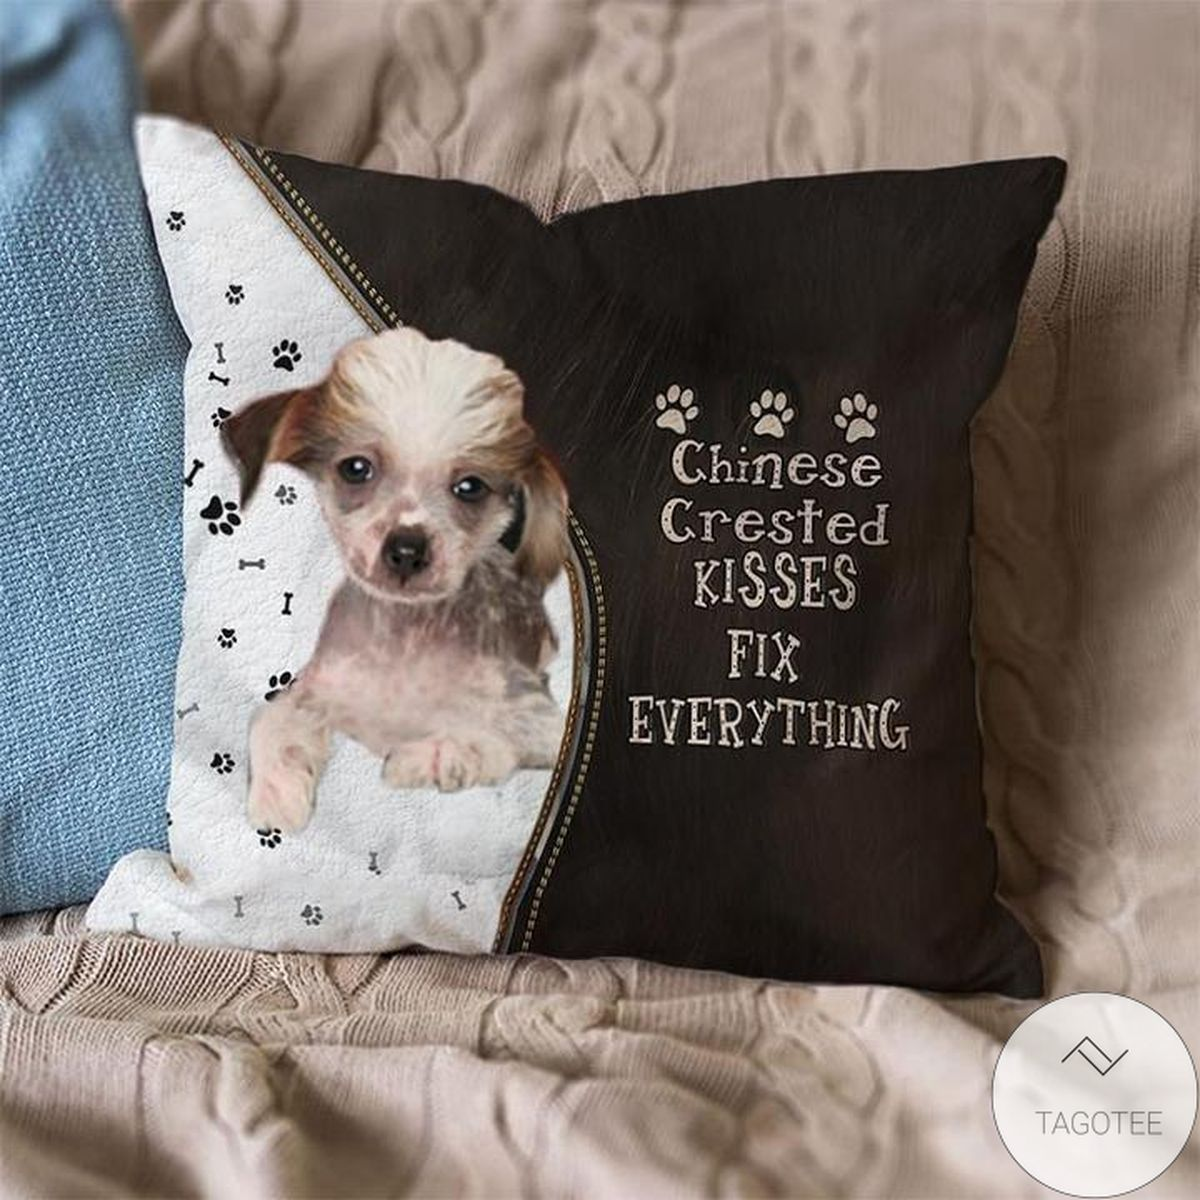 Chinese Crested Kisses Fix Everything Pillowcase